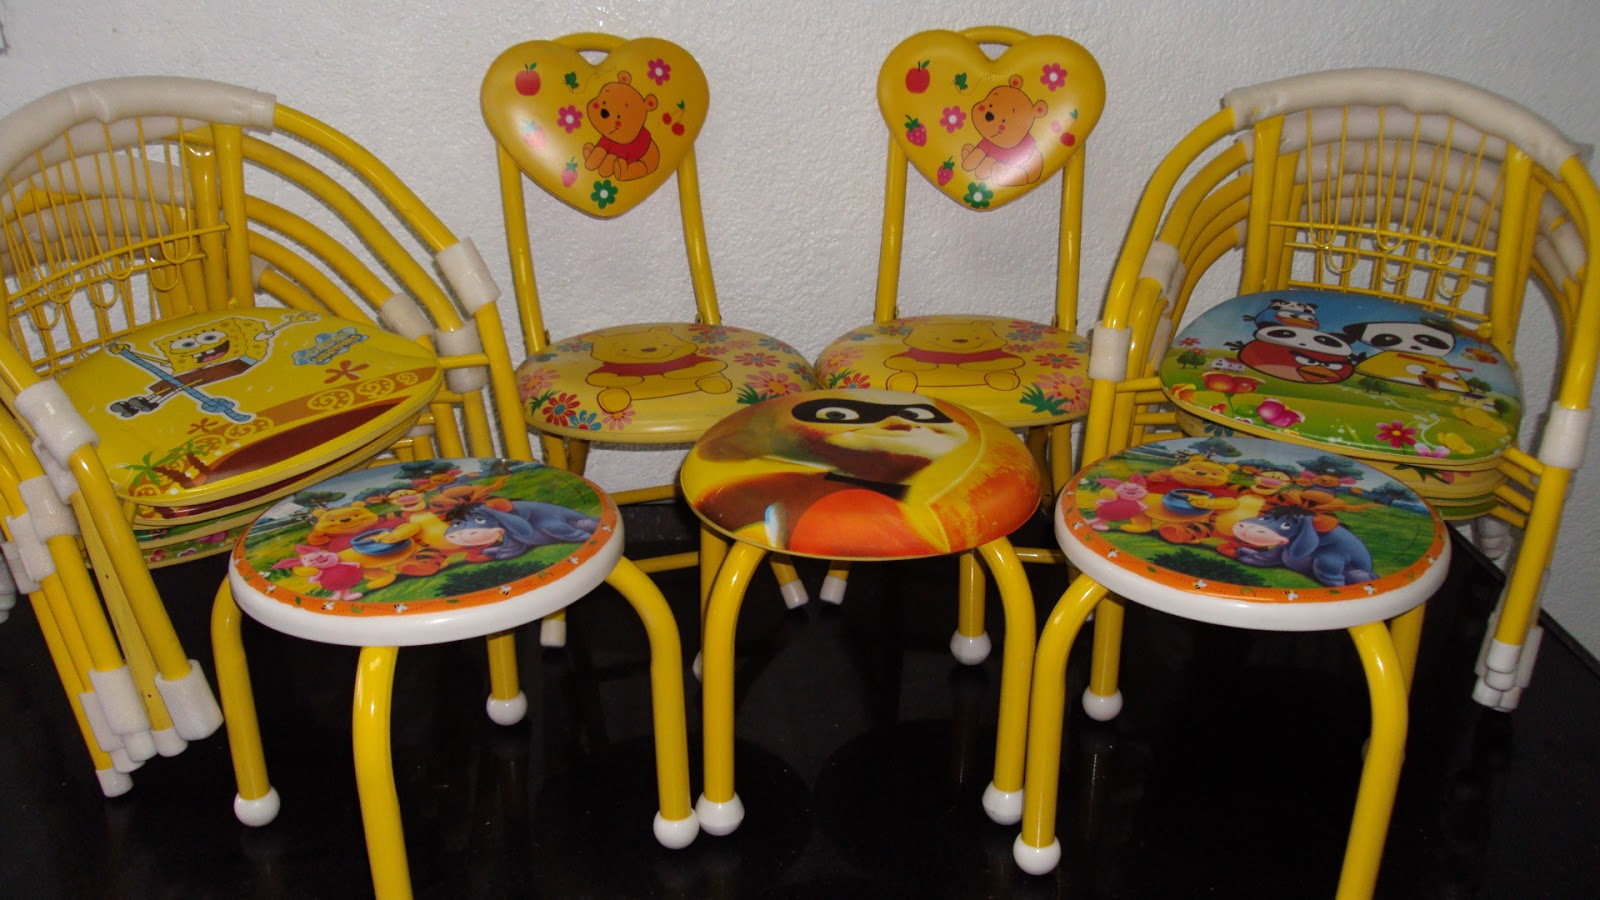 EcoWaste Coalition: Toxic Kiddie Chairs Banned in US and